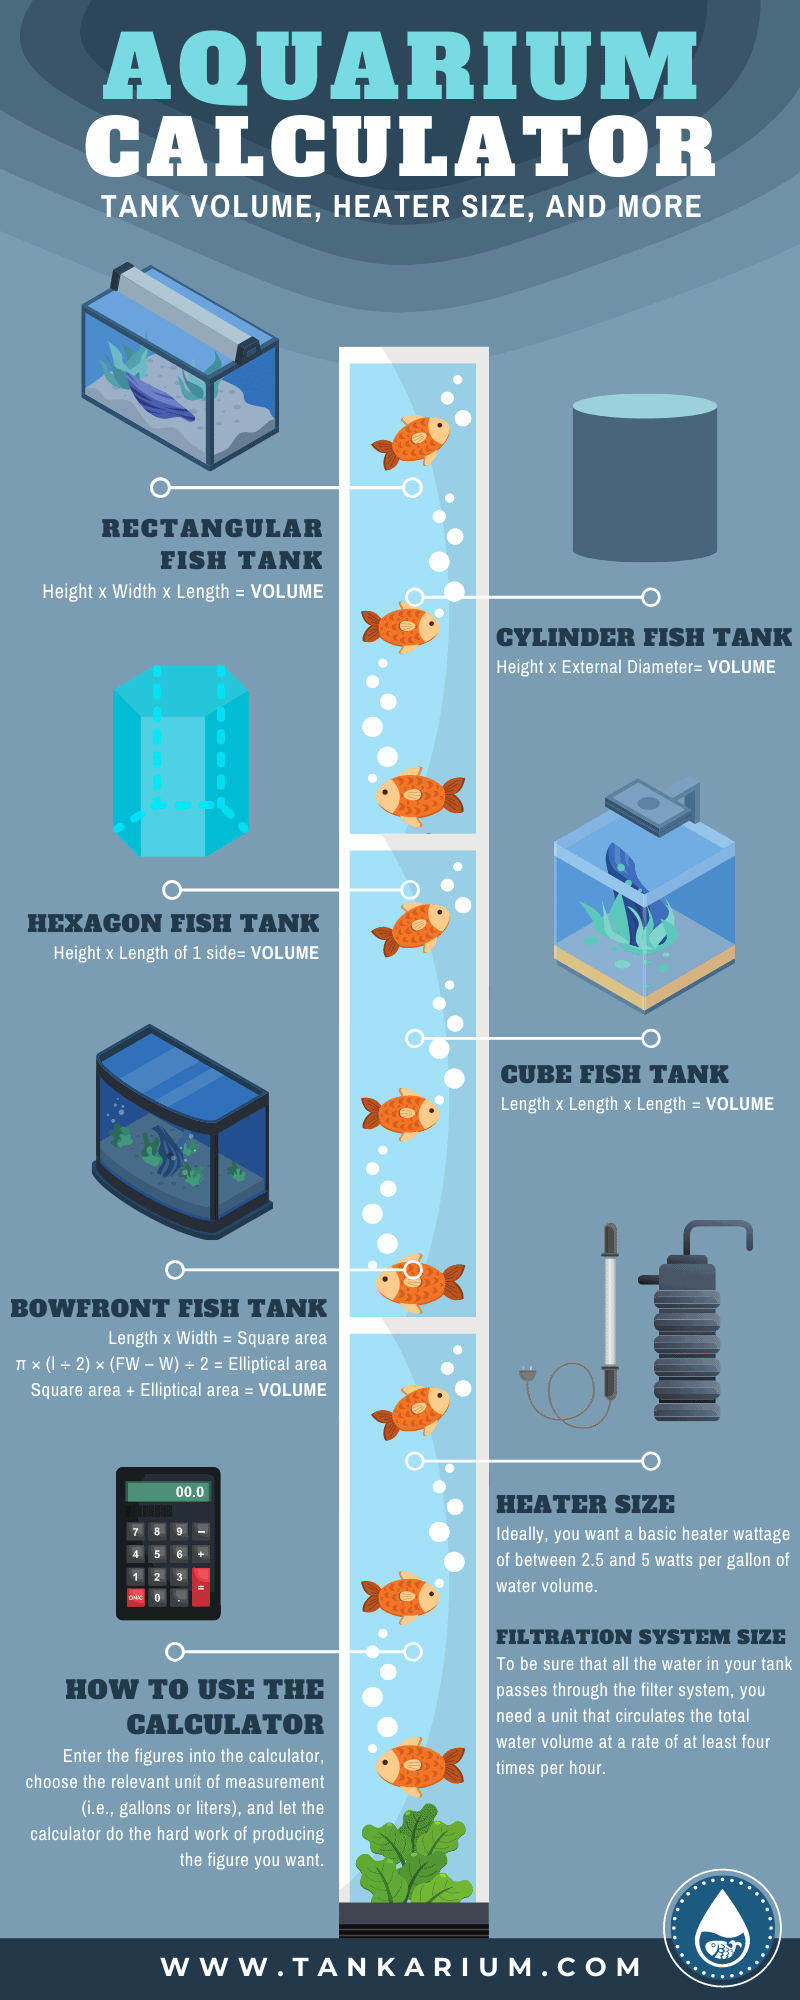 Aquarium Calculator - Tank Volume, Heater Size, And More - Infographic